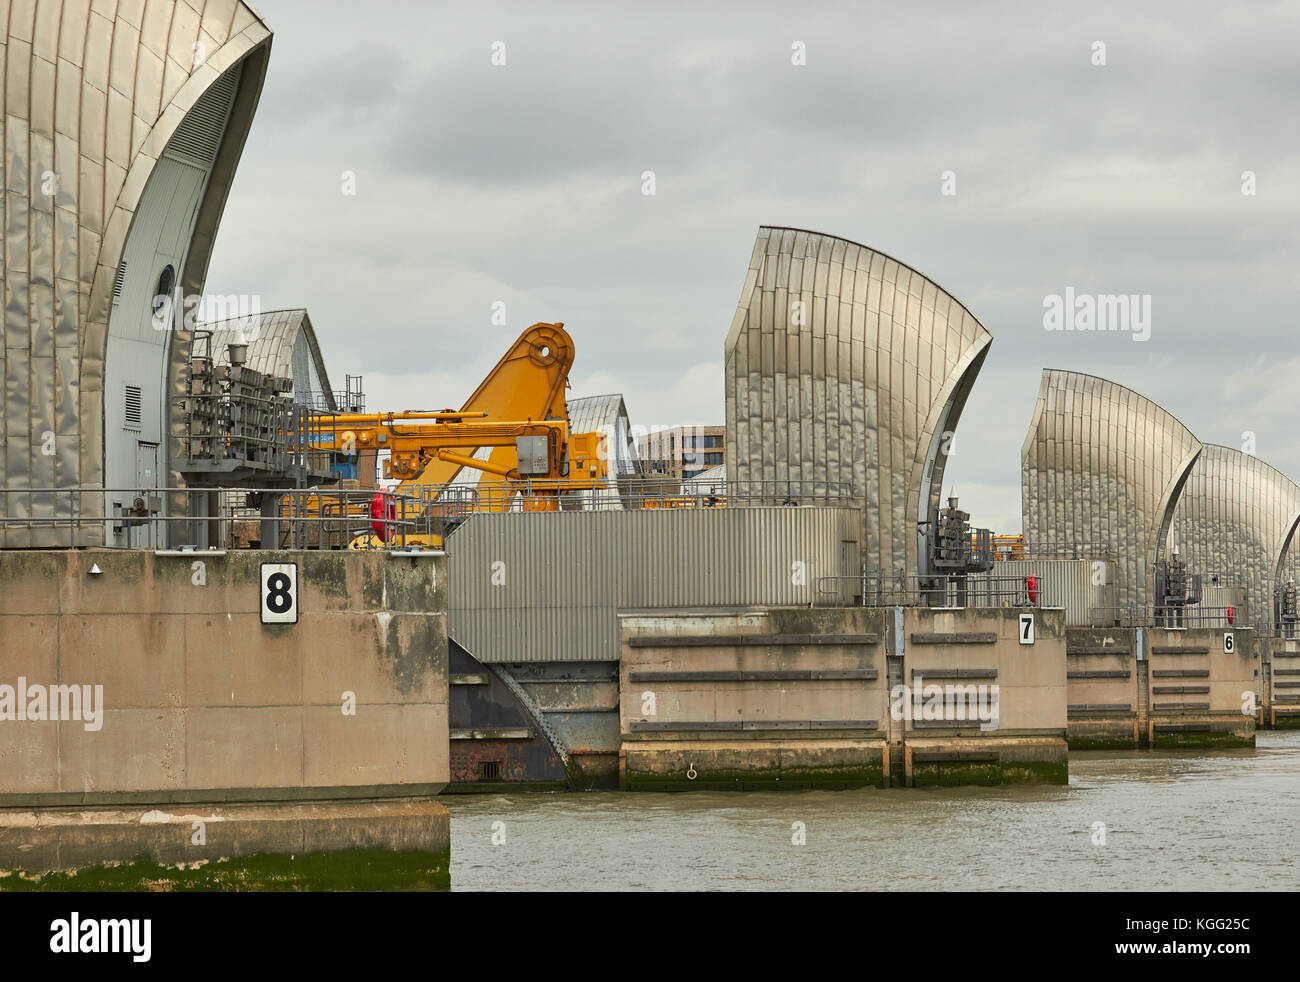 Thames Barrier, Greenwich, London, United Kingdom - Stock Image